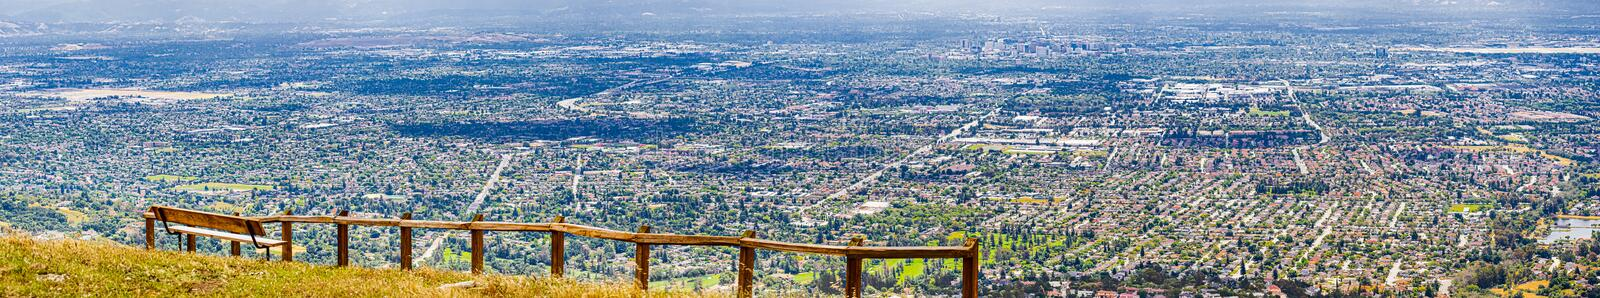 Vista point overlooking San Jose, the heart of Silicon Valley; south San Francisco bay area, California royalty free stock photo